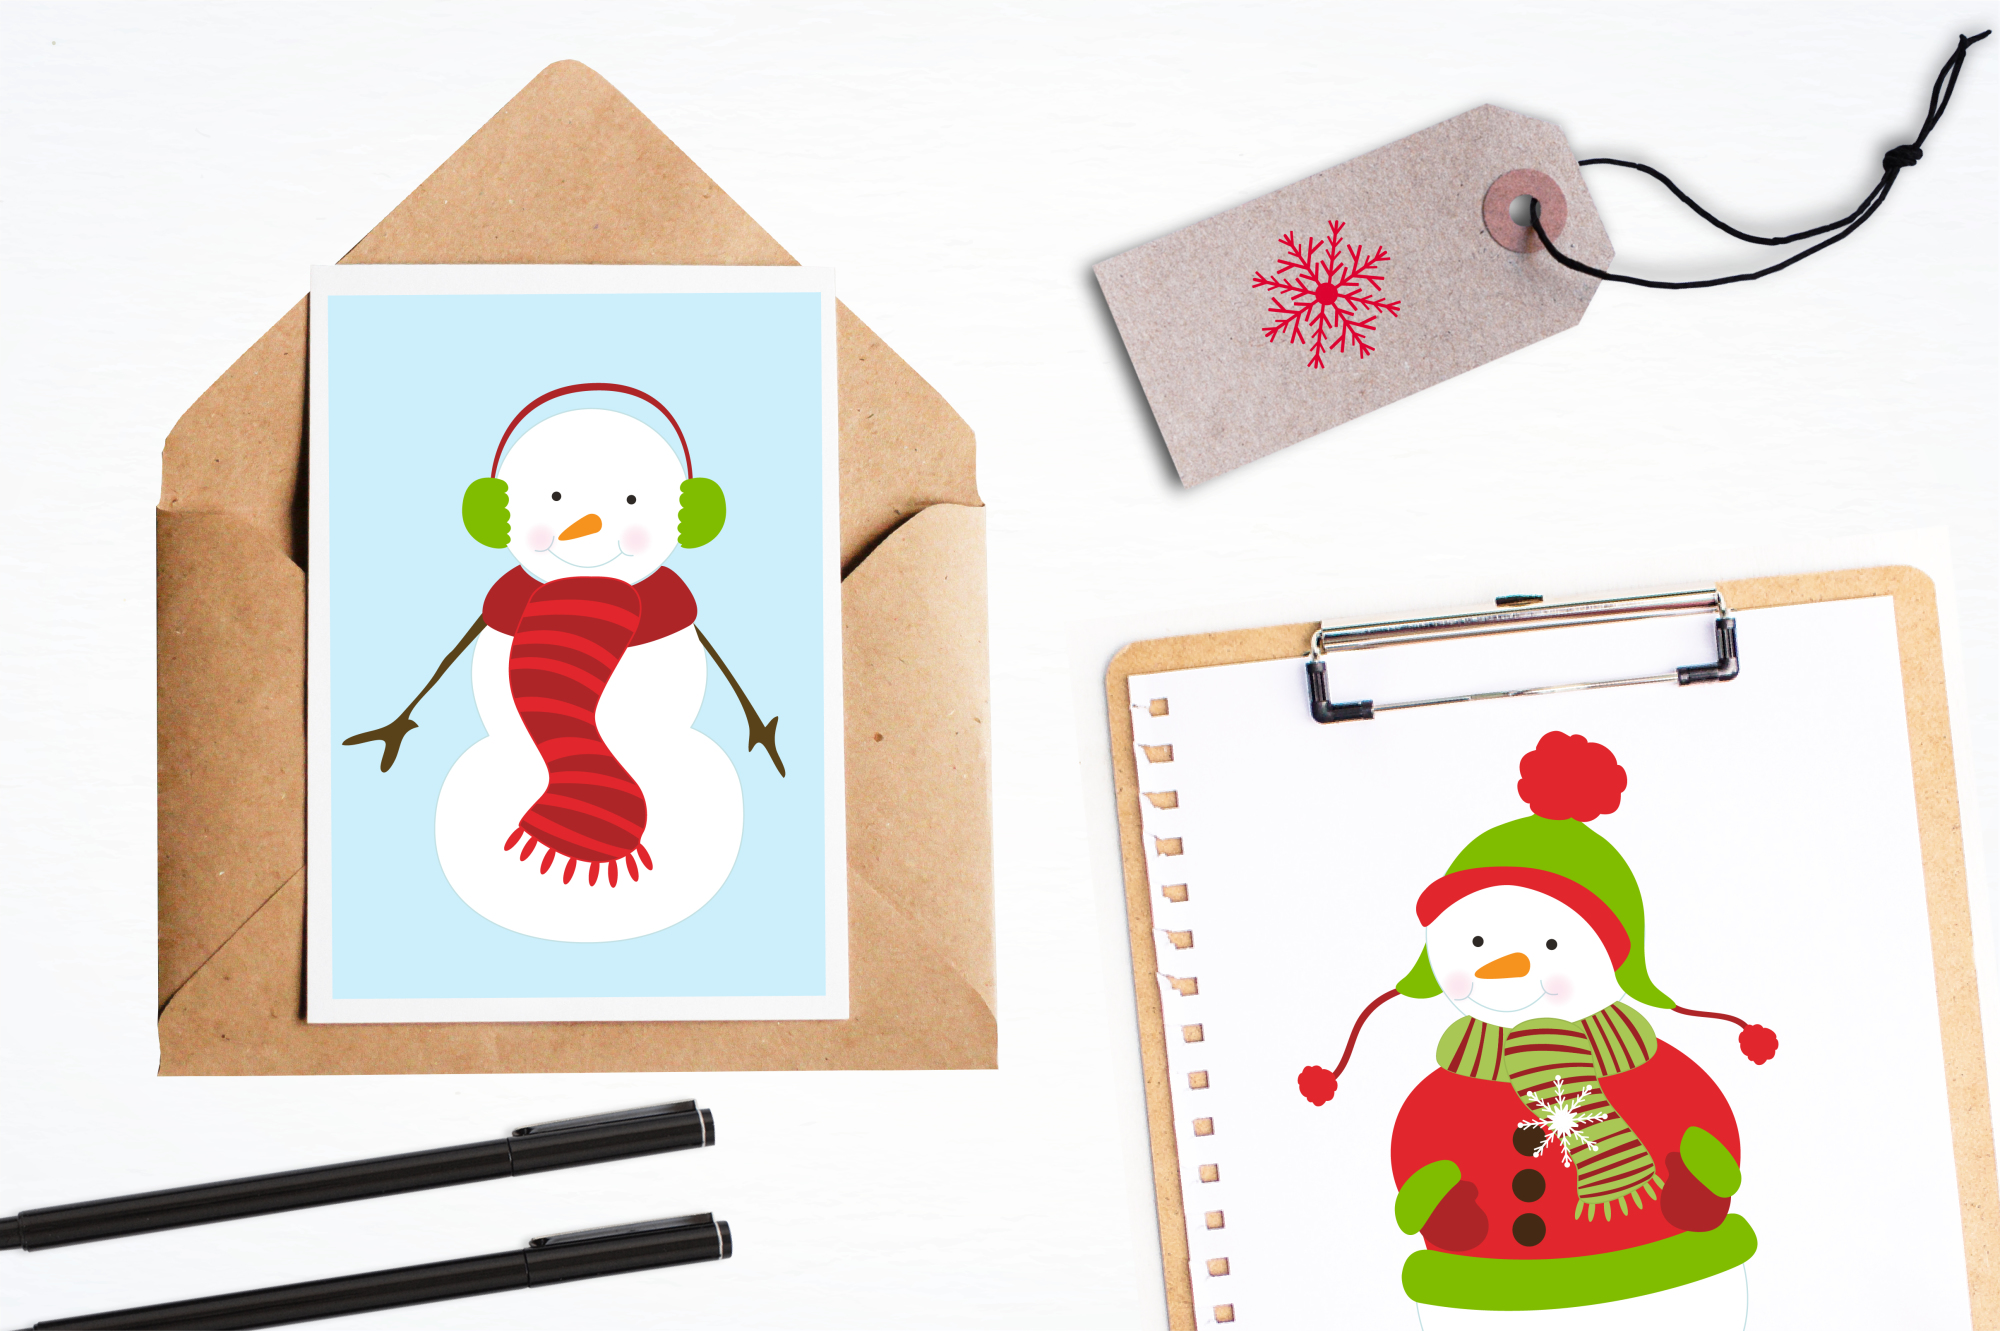 Mr. Snowman graphics and illustrations example image 4